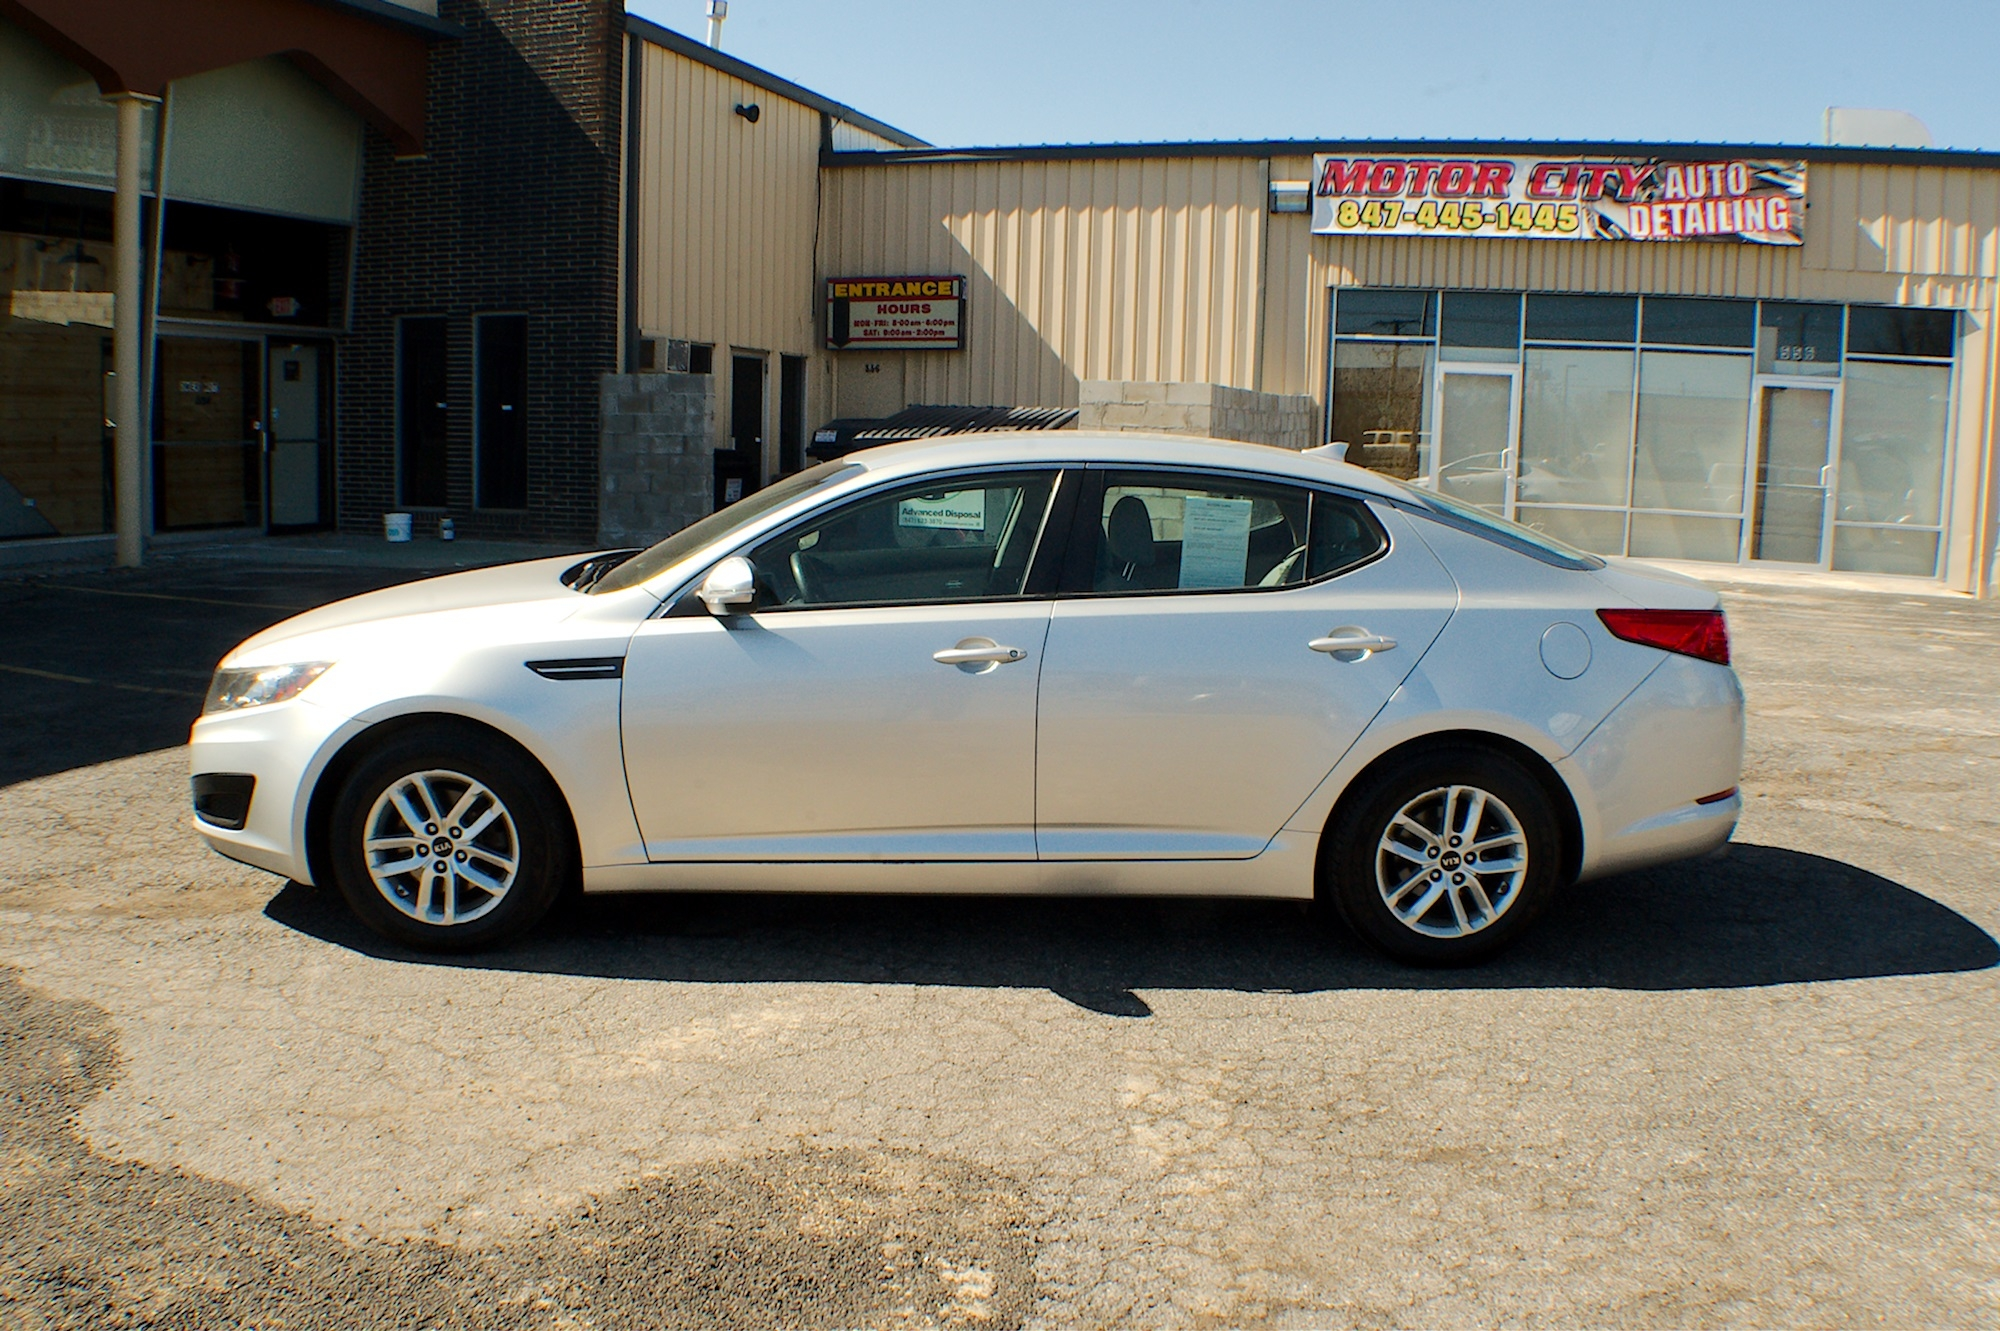 2011 Kia Optima GDI Silver Sedan Used Car Sale Buffalo Grove Deerfield Fox Lake Antioch